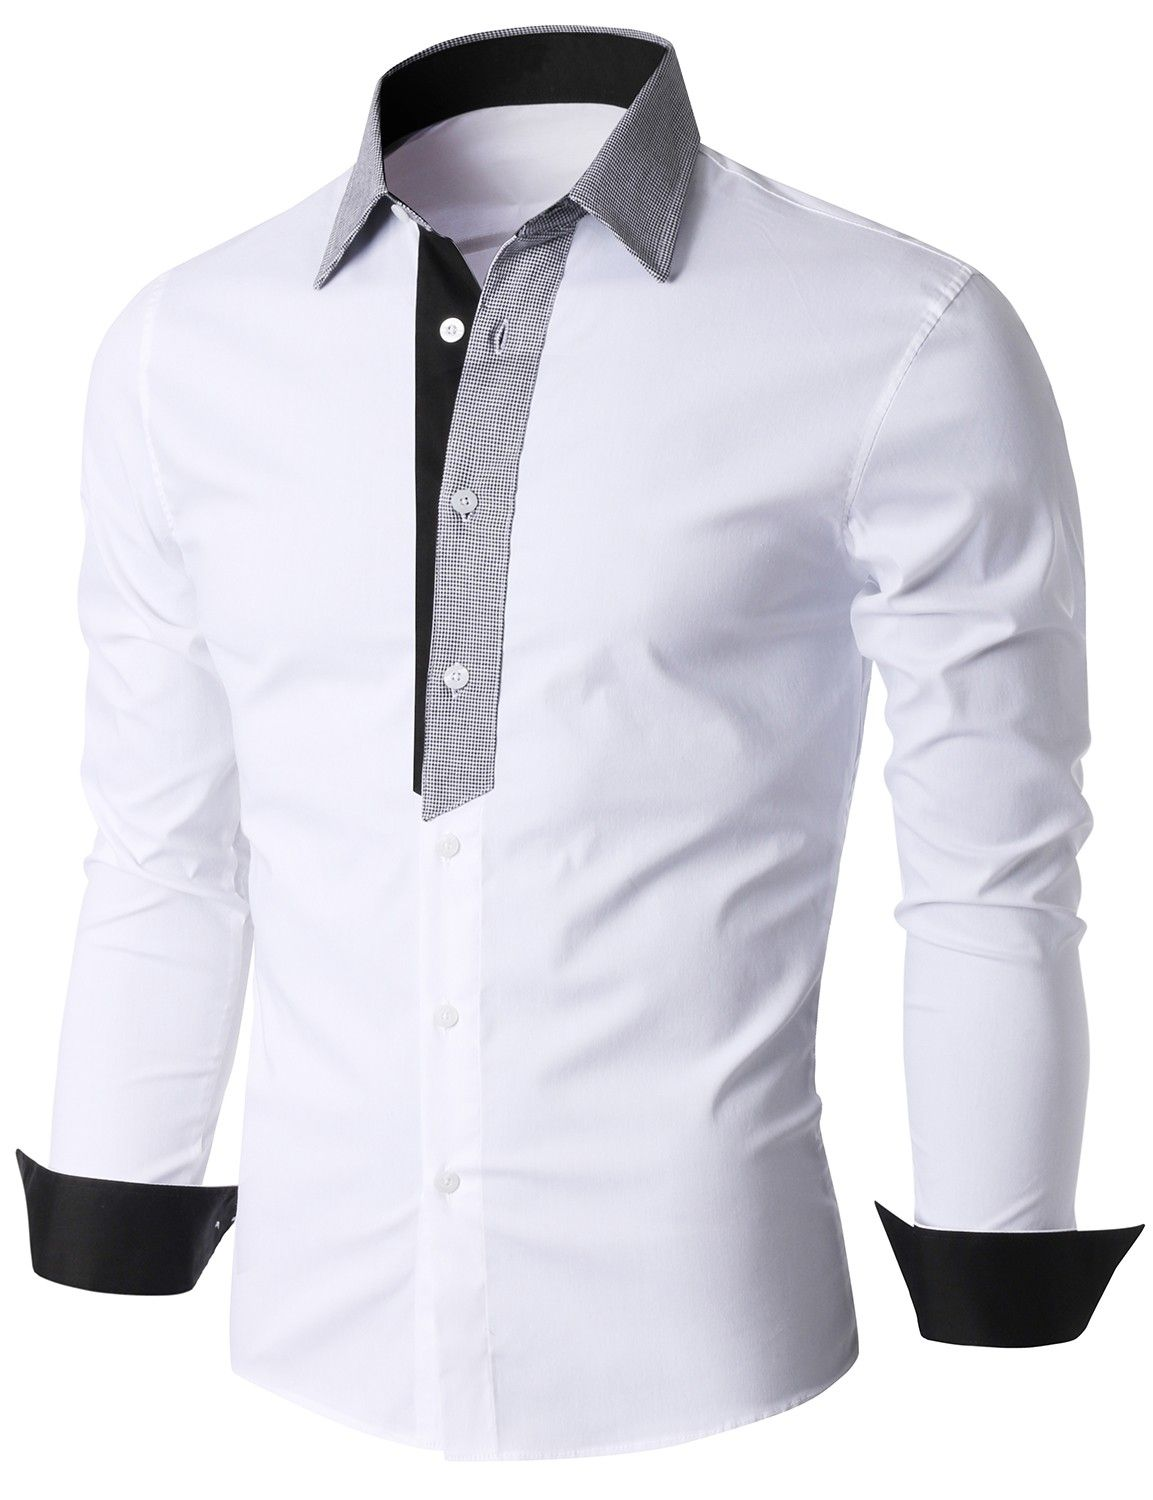 3599f592521f Doublju Men s Contrast Collar and Placket Long Sleeve Dress Shirt  (KMTSTL0185)  doublju